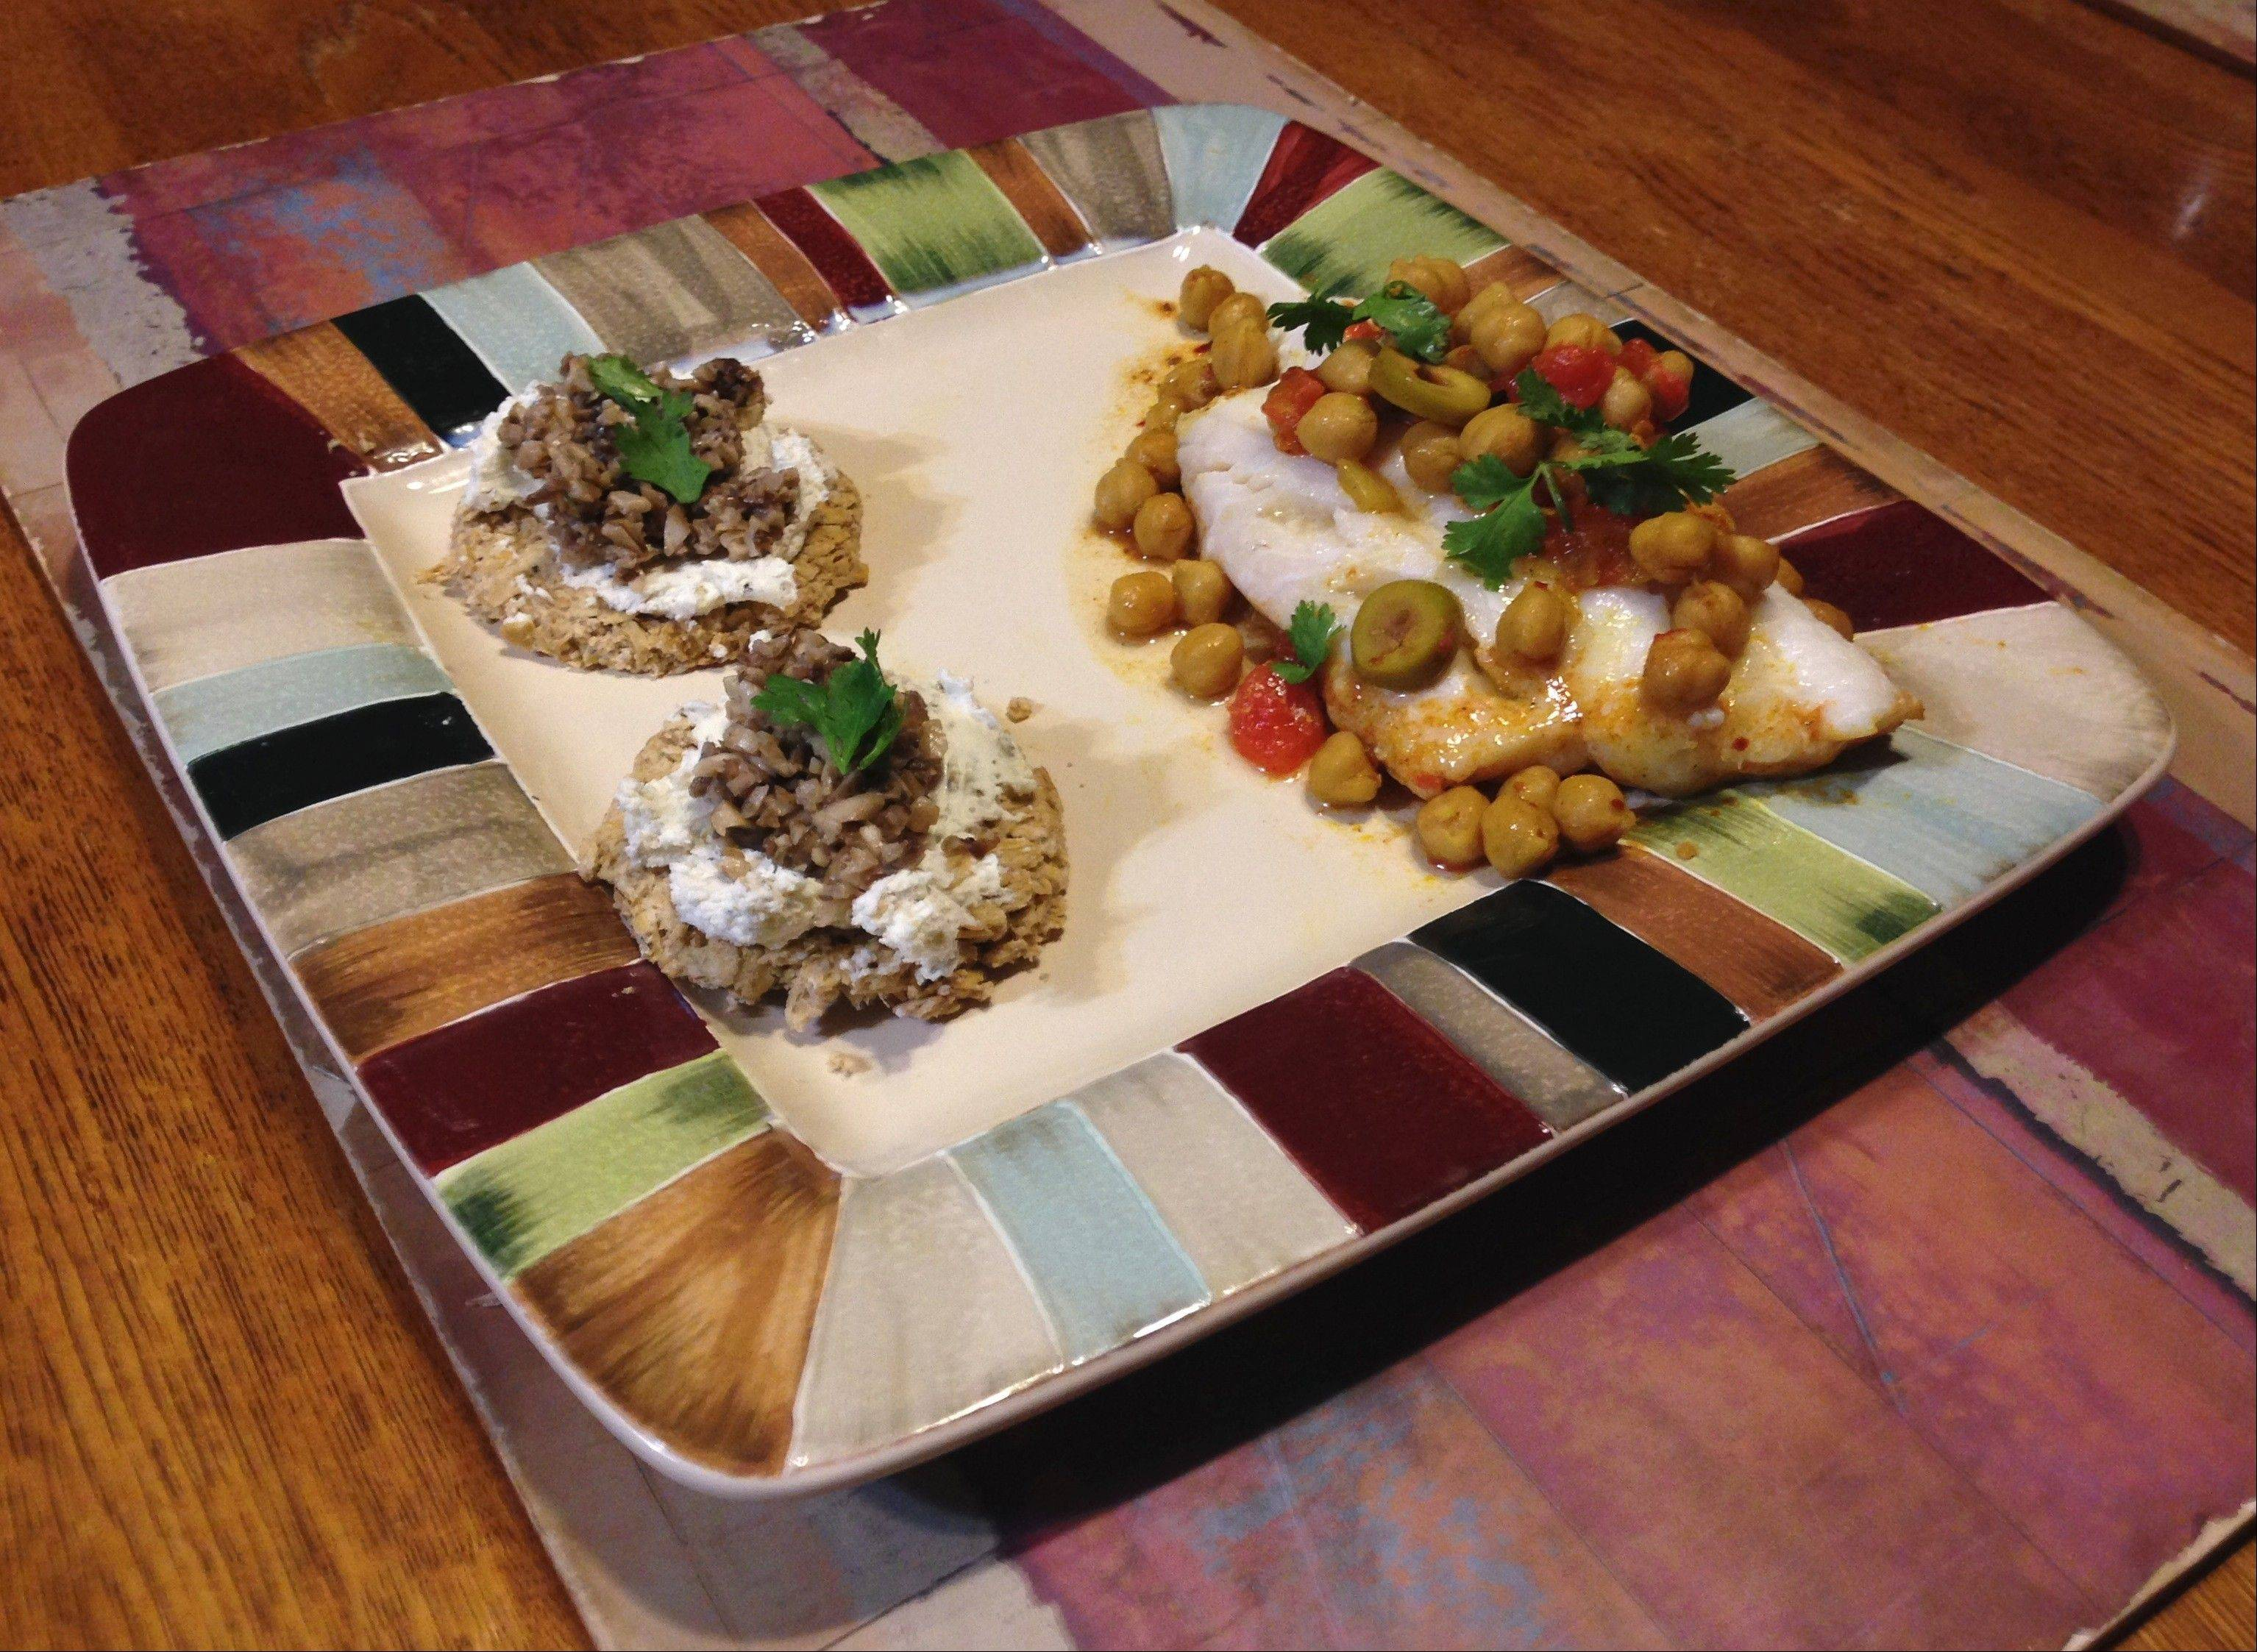 Not one to shy away from a challenge, Michael Pennisi gave cod a Moroccan flare and served it with oaty crostini.